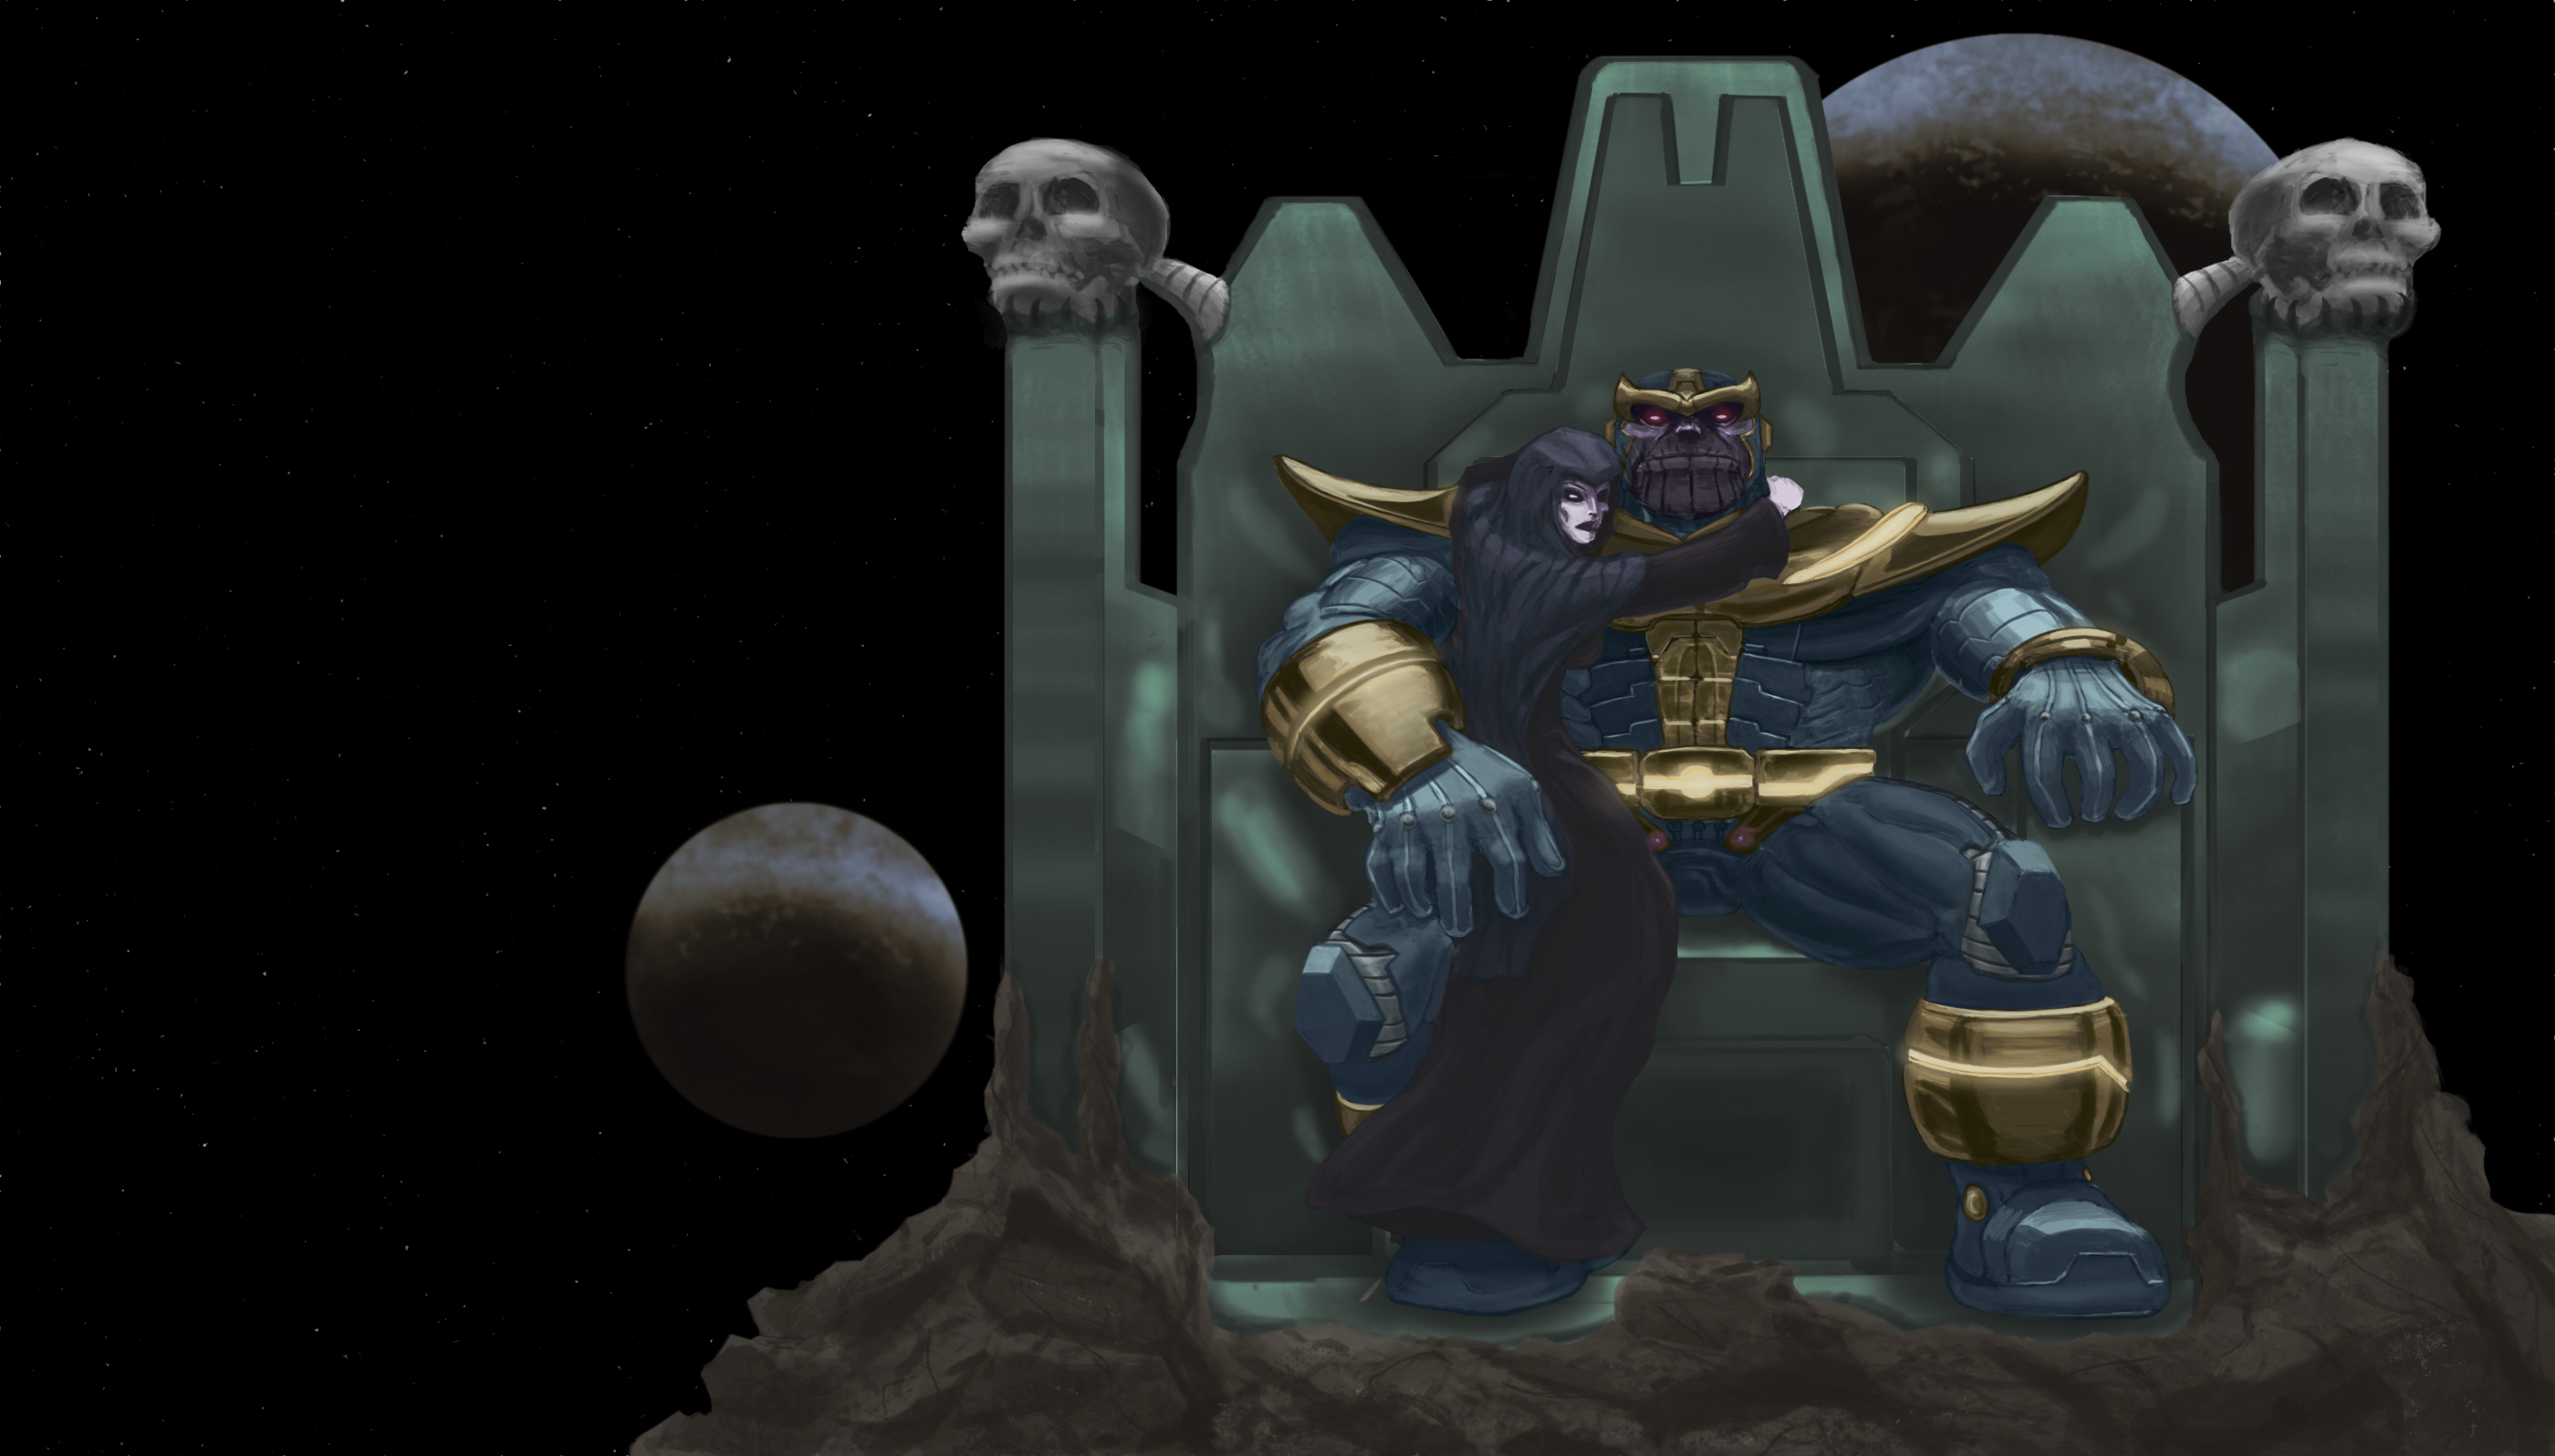 Thanos and Death